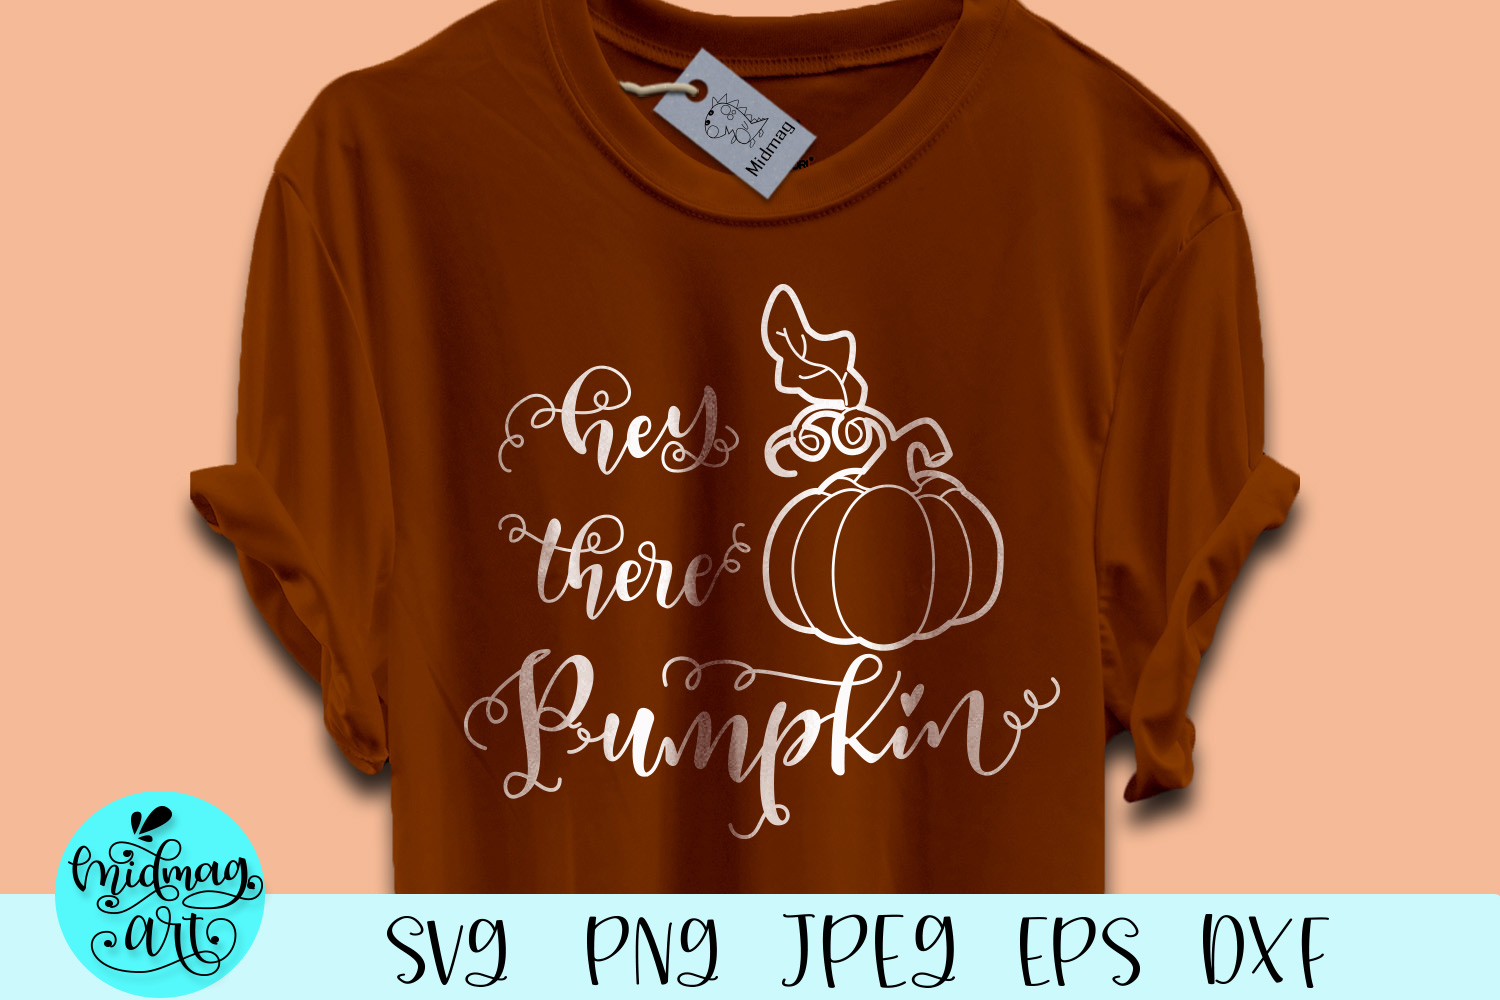 Download Free Hey There Pumpkin Graphic By Midmagart Creative Fabrica for Cricut Explore, Silhouette and other cutting machines.